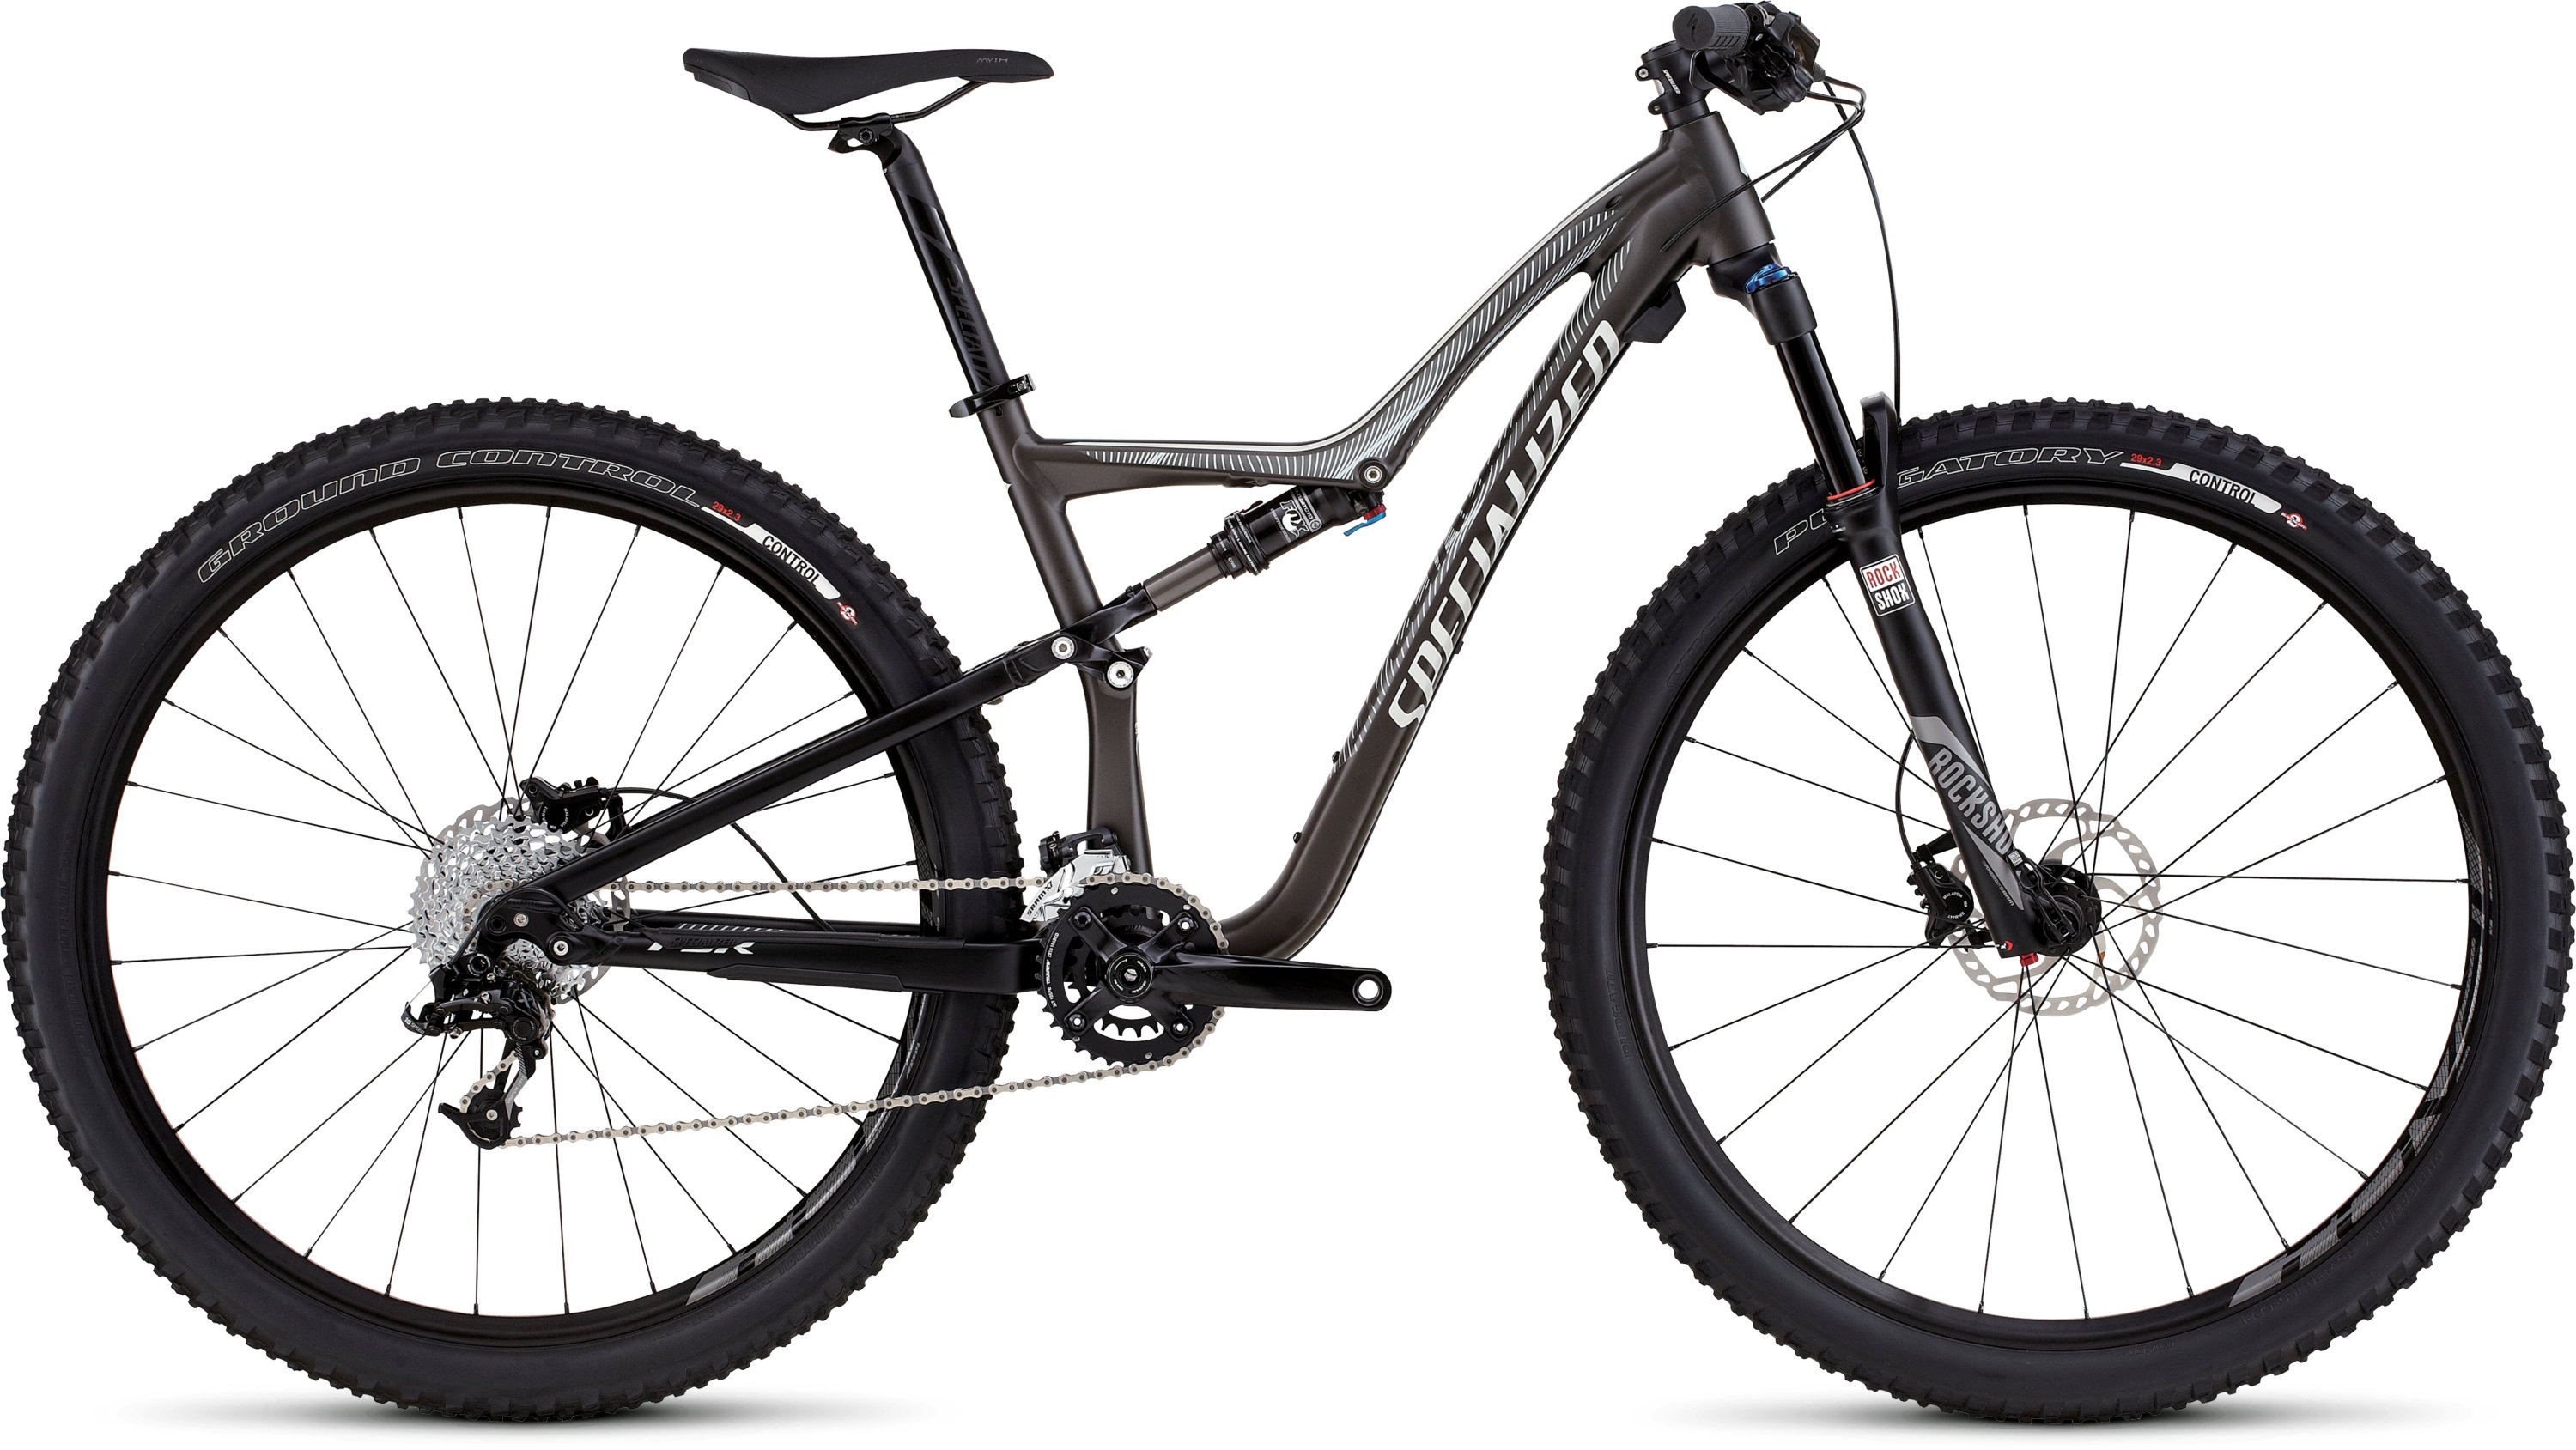 SPECIALIZED RUMOR FSR COMP 29 WRMCHAR/DRTYWHT/CHAR S - schneider-sports